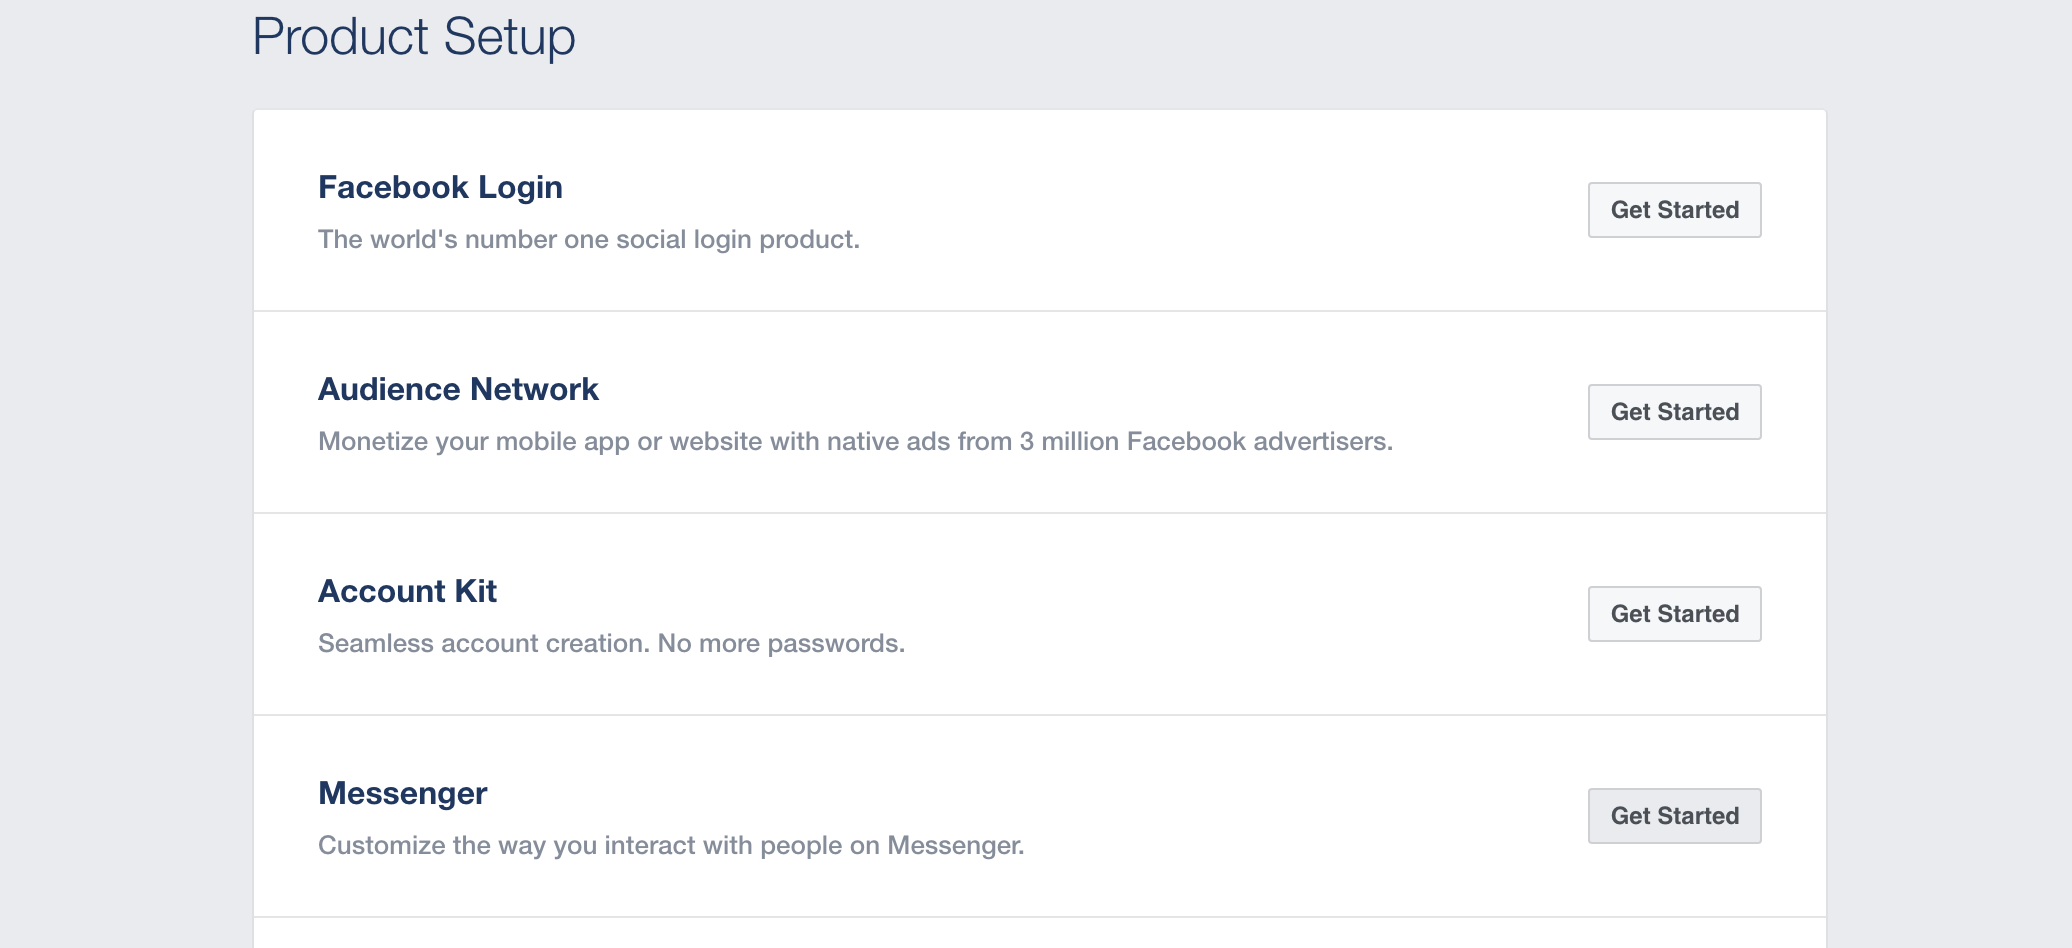 Screenshot showing Facebook app product